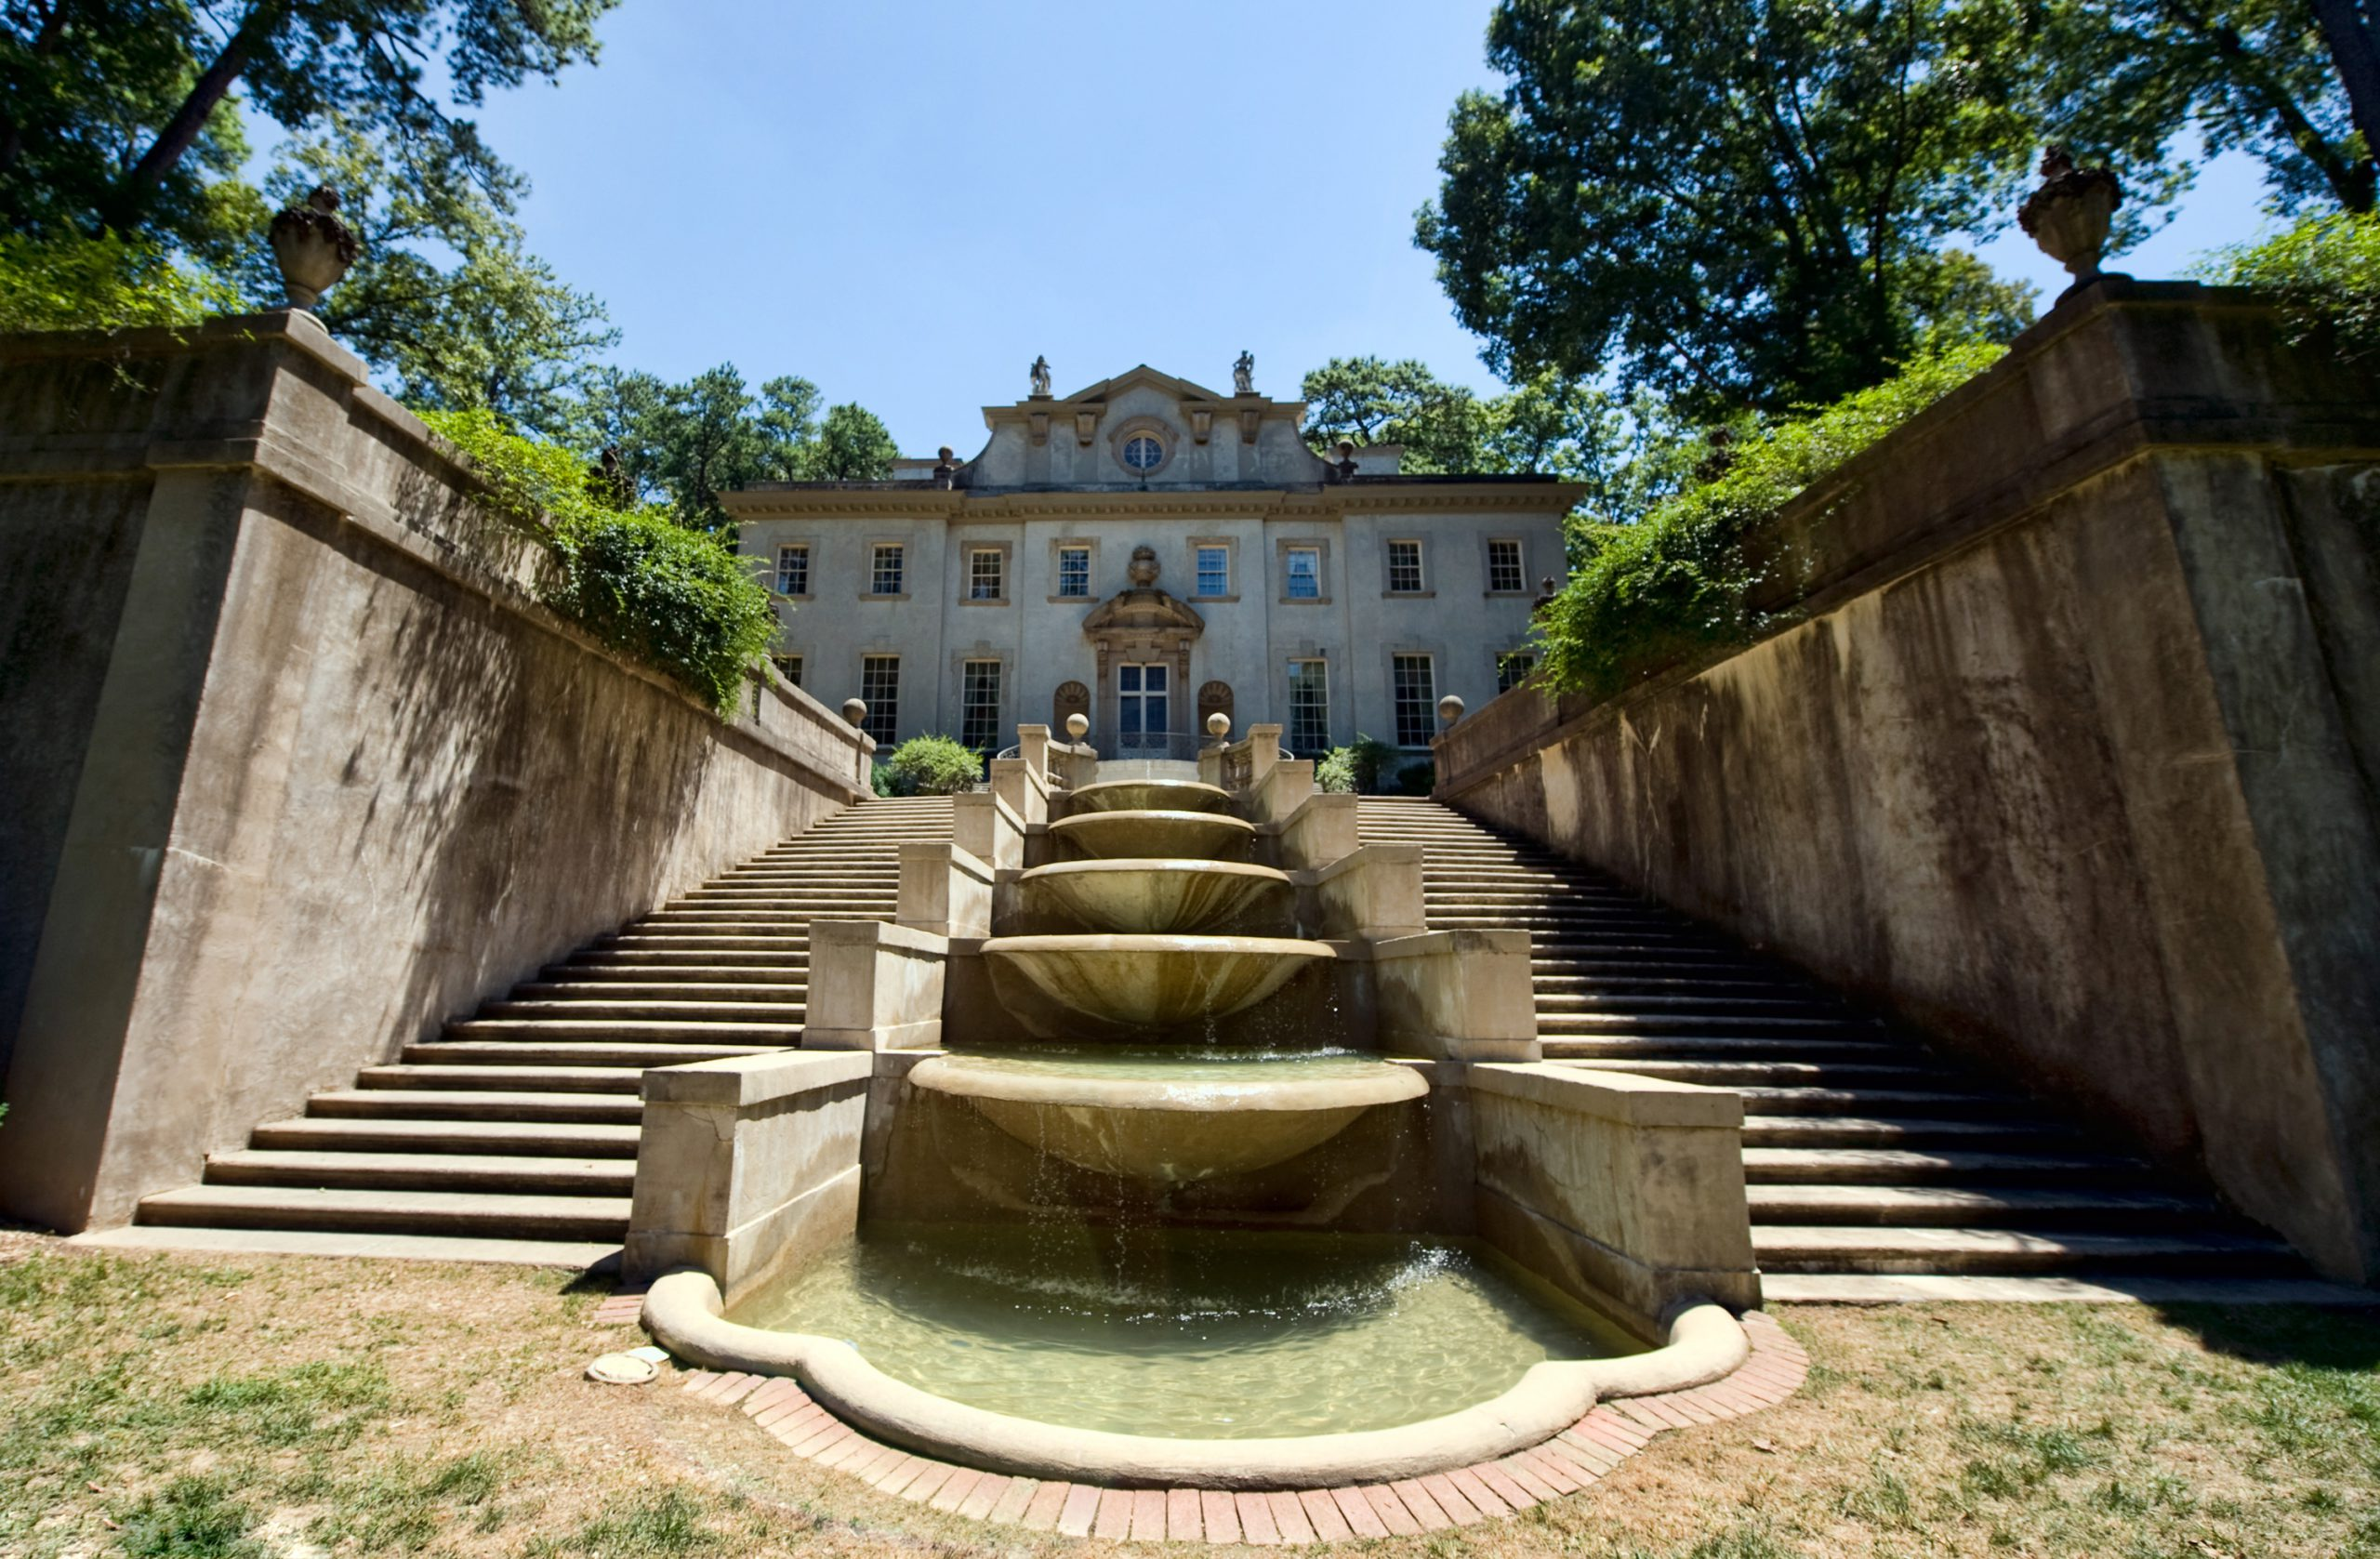 The stairs and fountain behind the Swan House at Atlanta History Center.